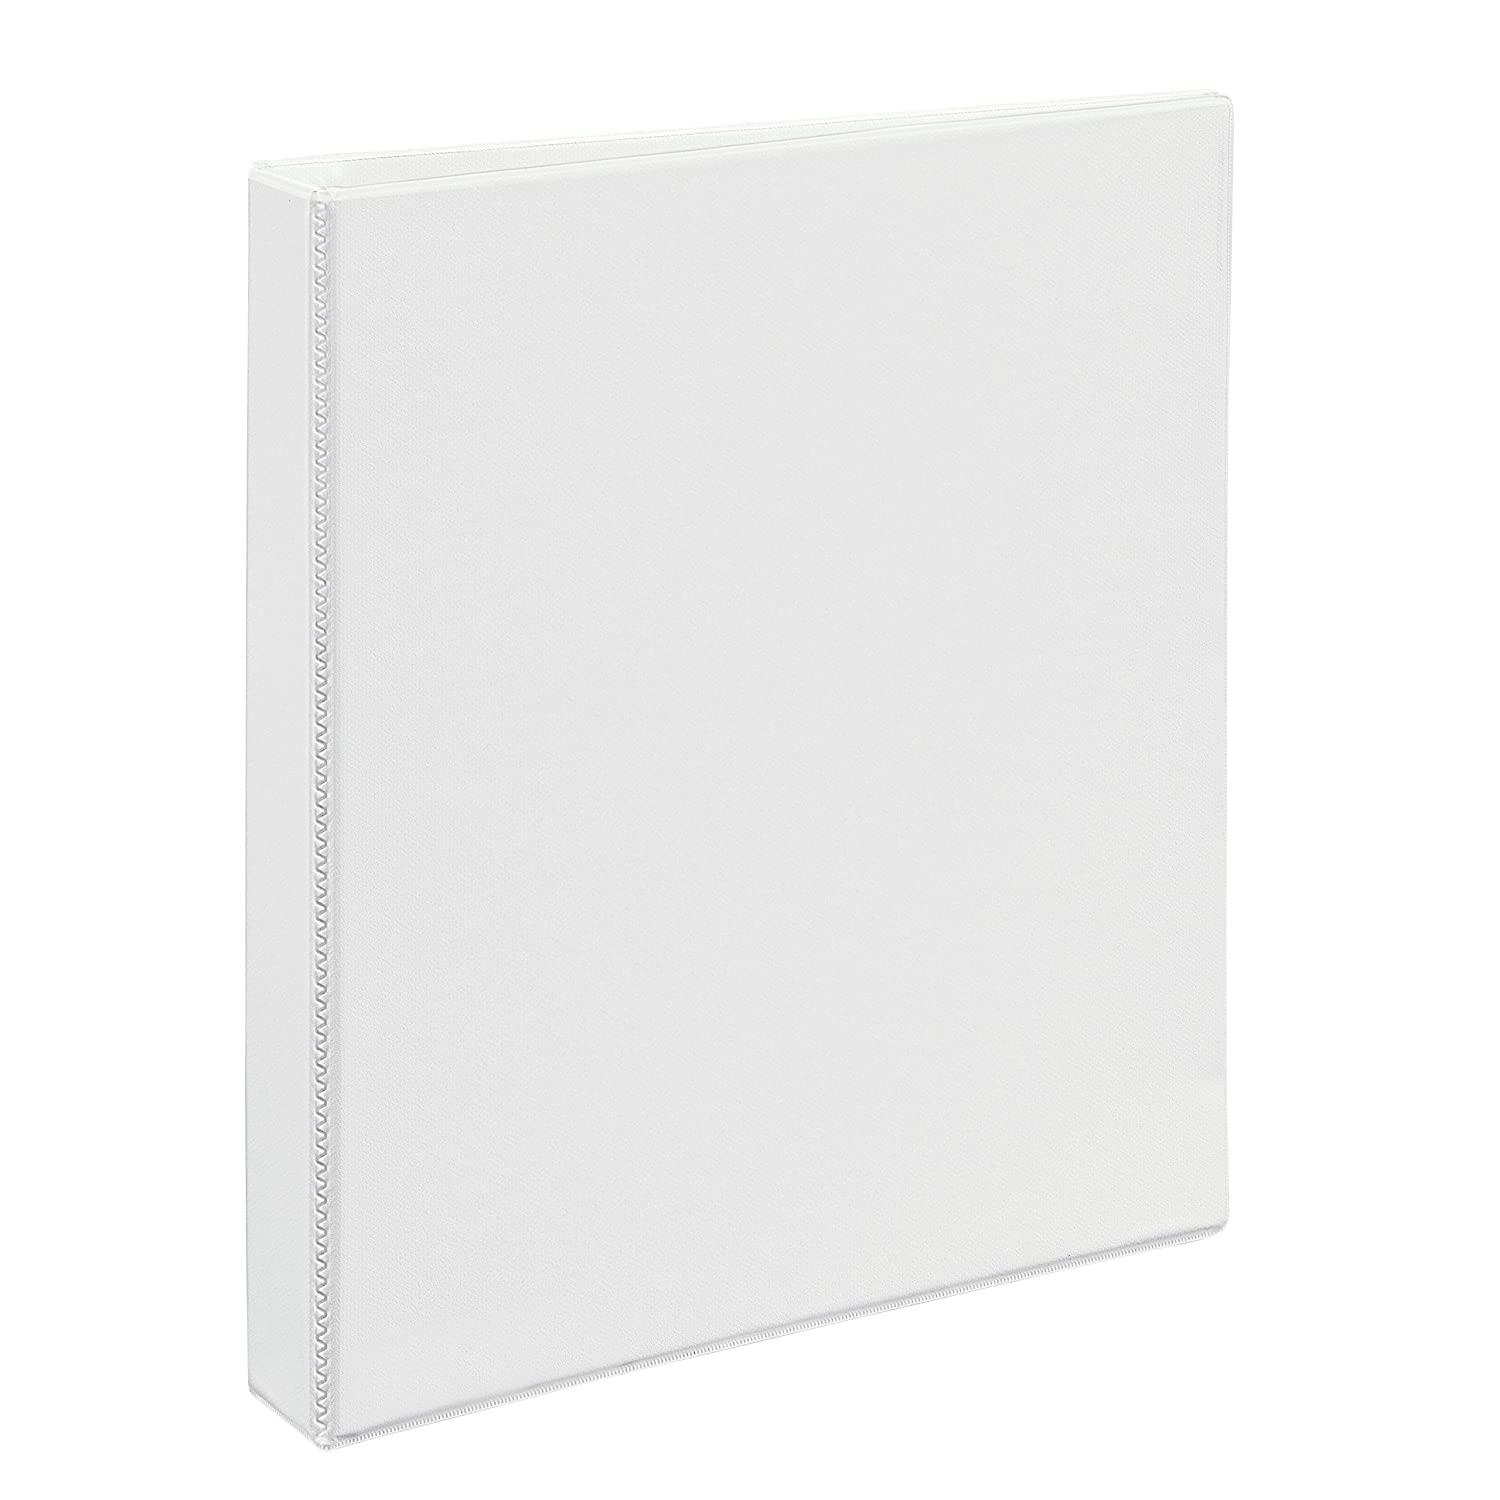 Amazon avery heavy duty view binder with 1 inch one touch amazon avery heavy duty view binder with 1 inch one touch ezd ring white 1 binder 79799 office products jeuxipadfo Image collections